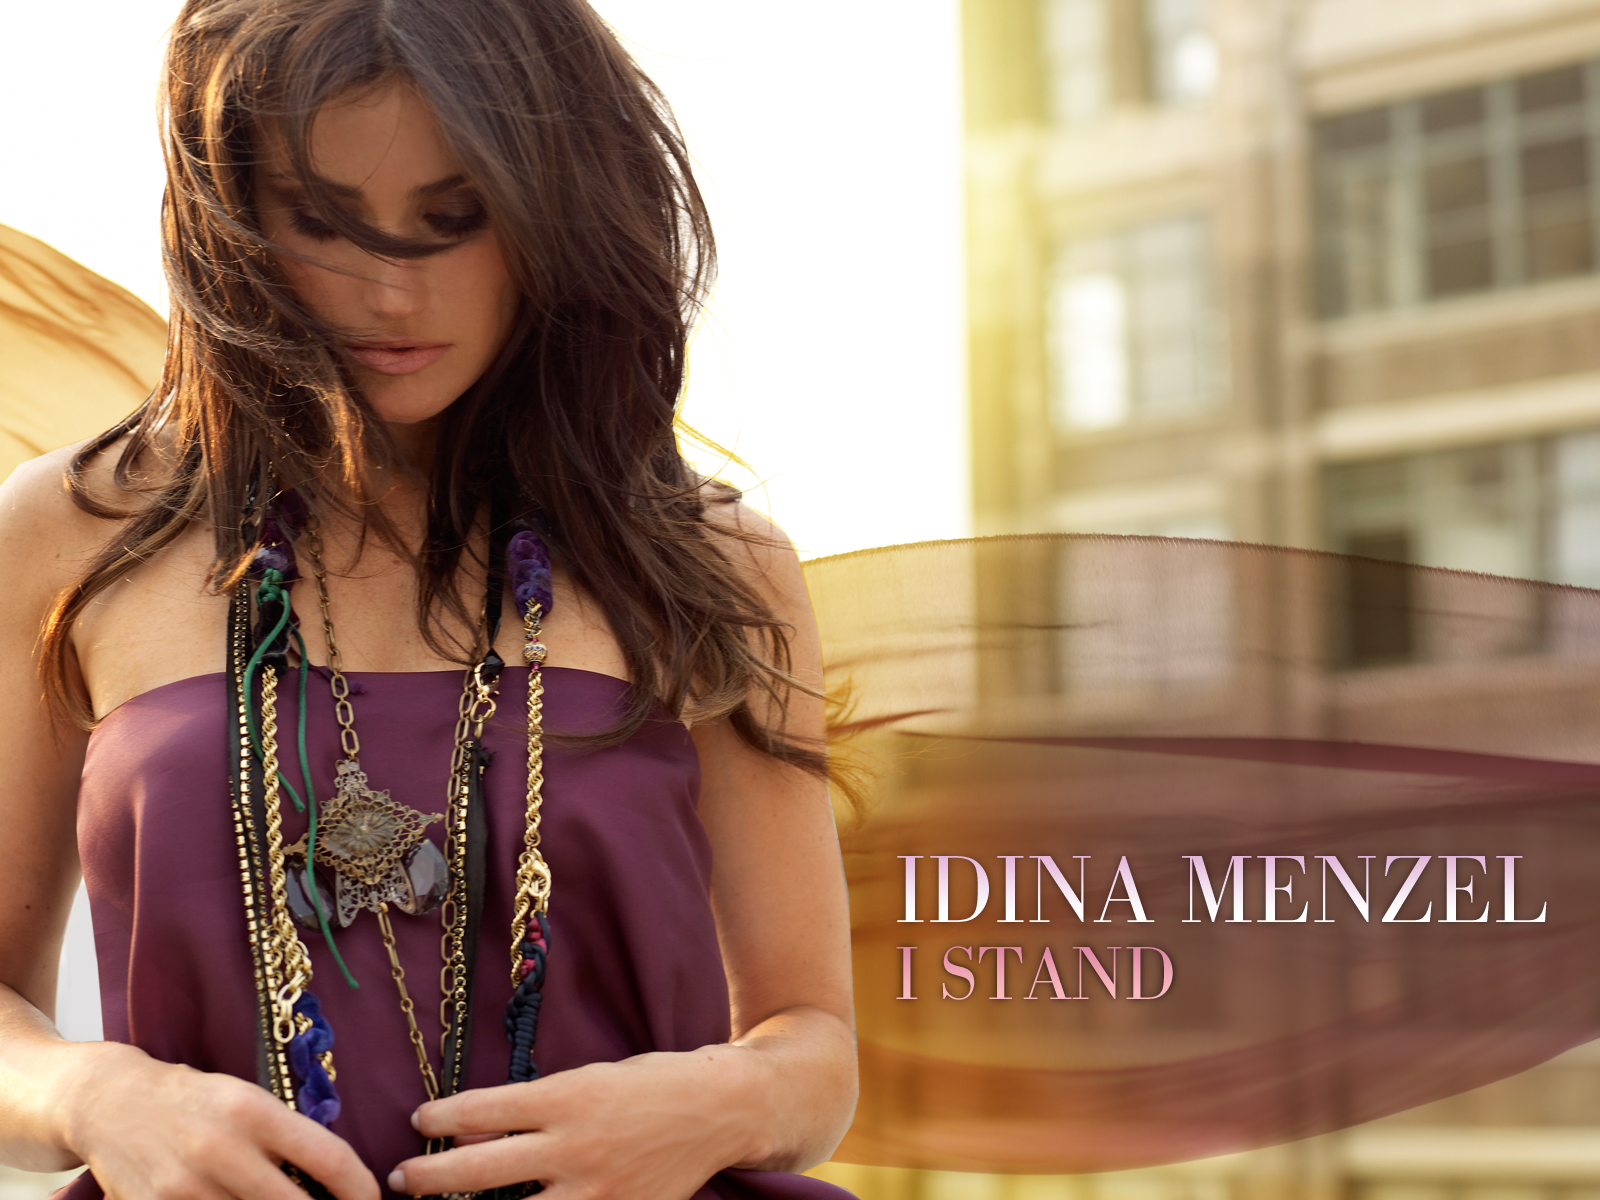 Idina menzel wallpaper